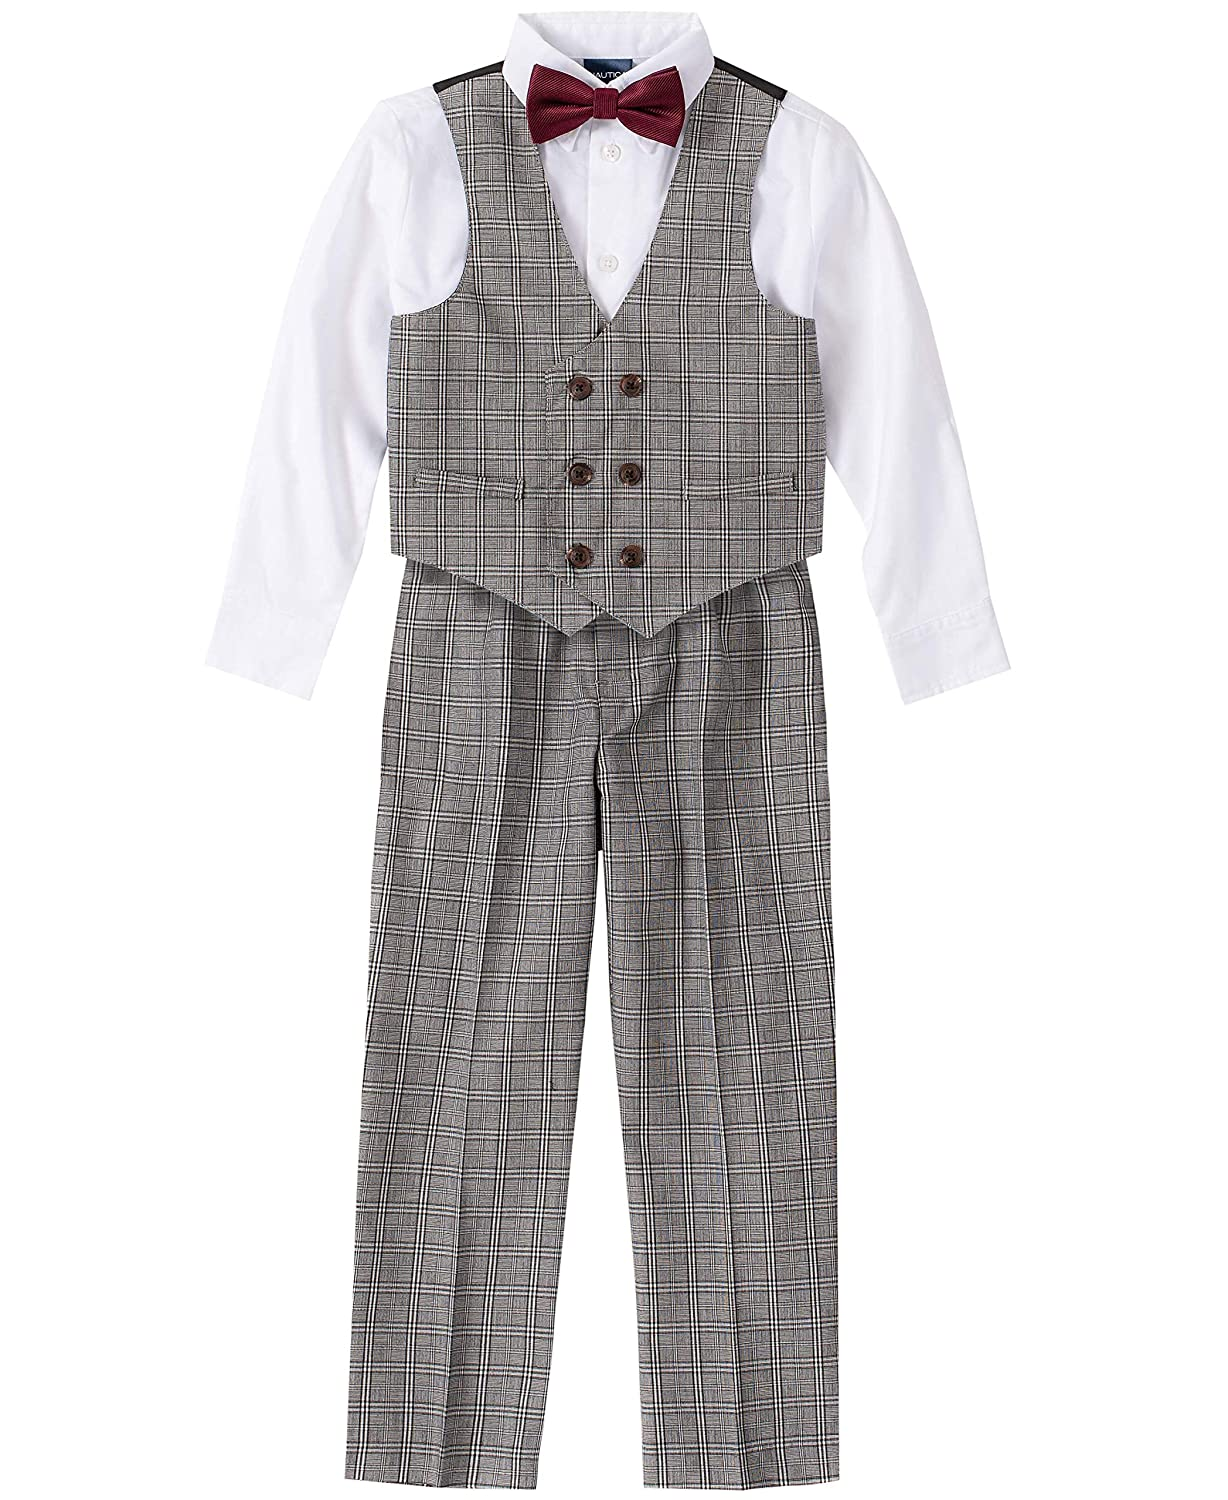 Vintage Style Children's Clothing: Girls, Boys, Baby, Toddler Nautica Boys 4-Piece Vest Set with Dress Shirt Bow Tie Vest and Pants $20.97 AT vintagedancer.com